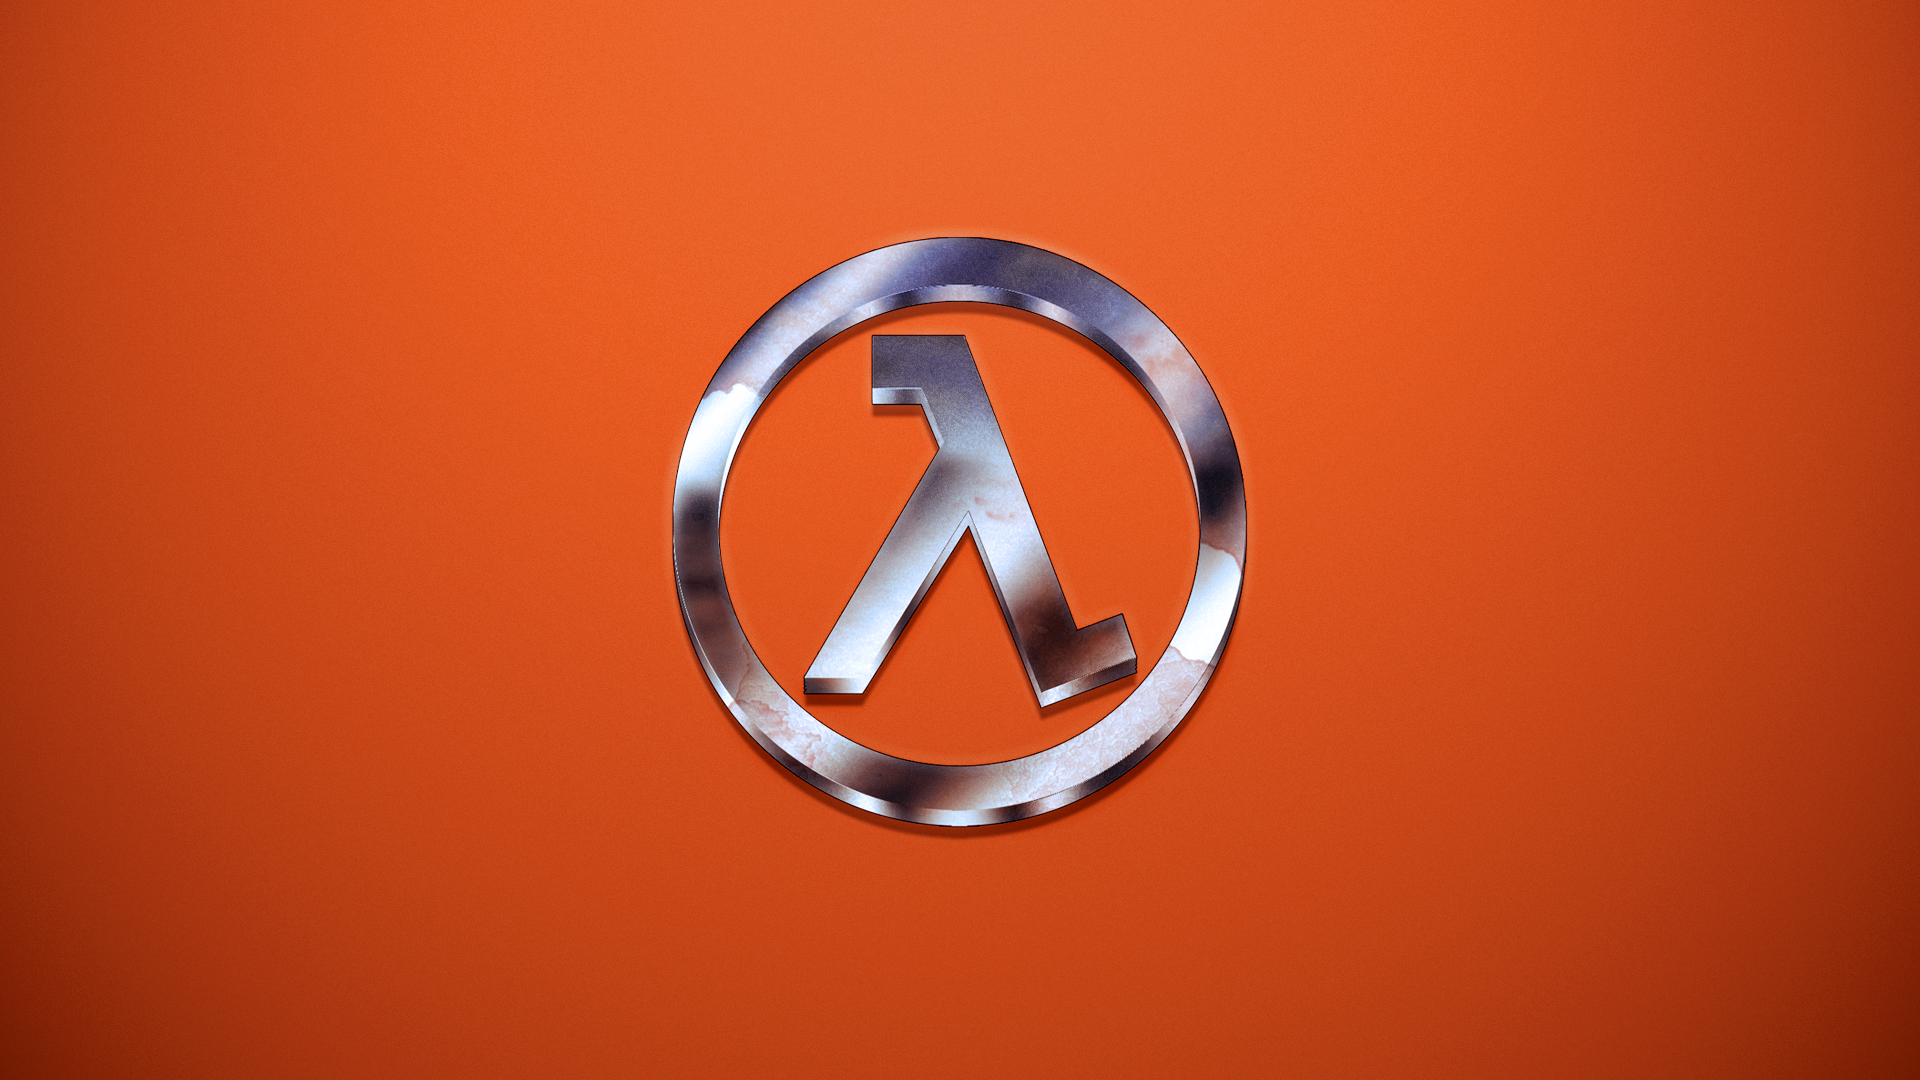 Lambda Wallpaper [1920x1080] : HalfLife